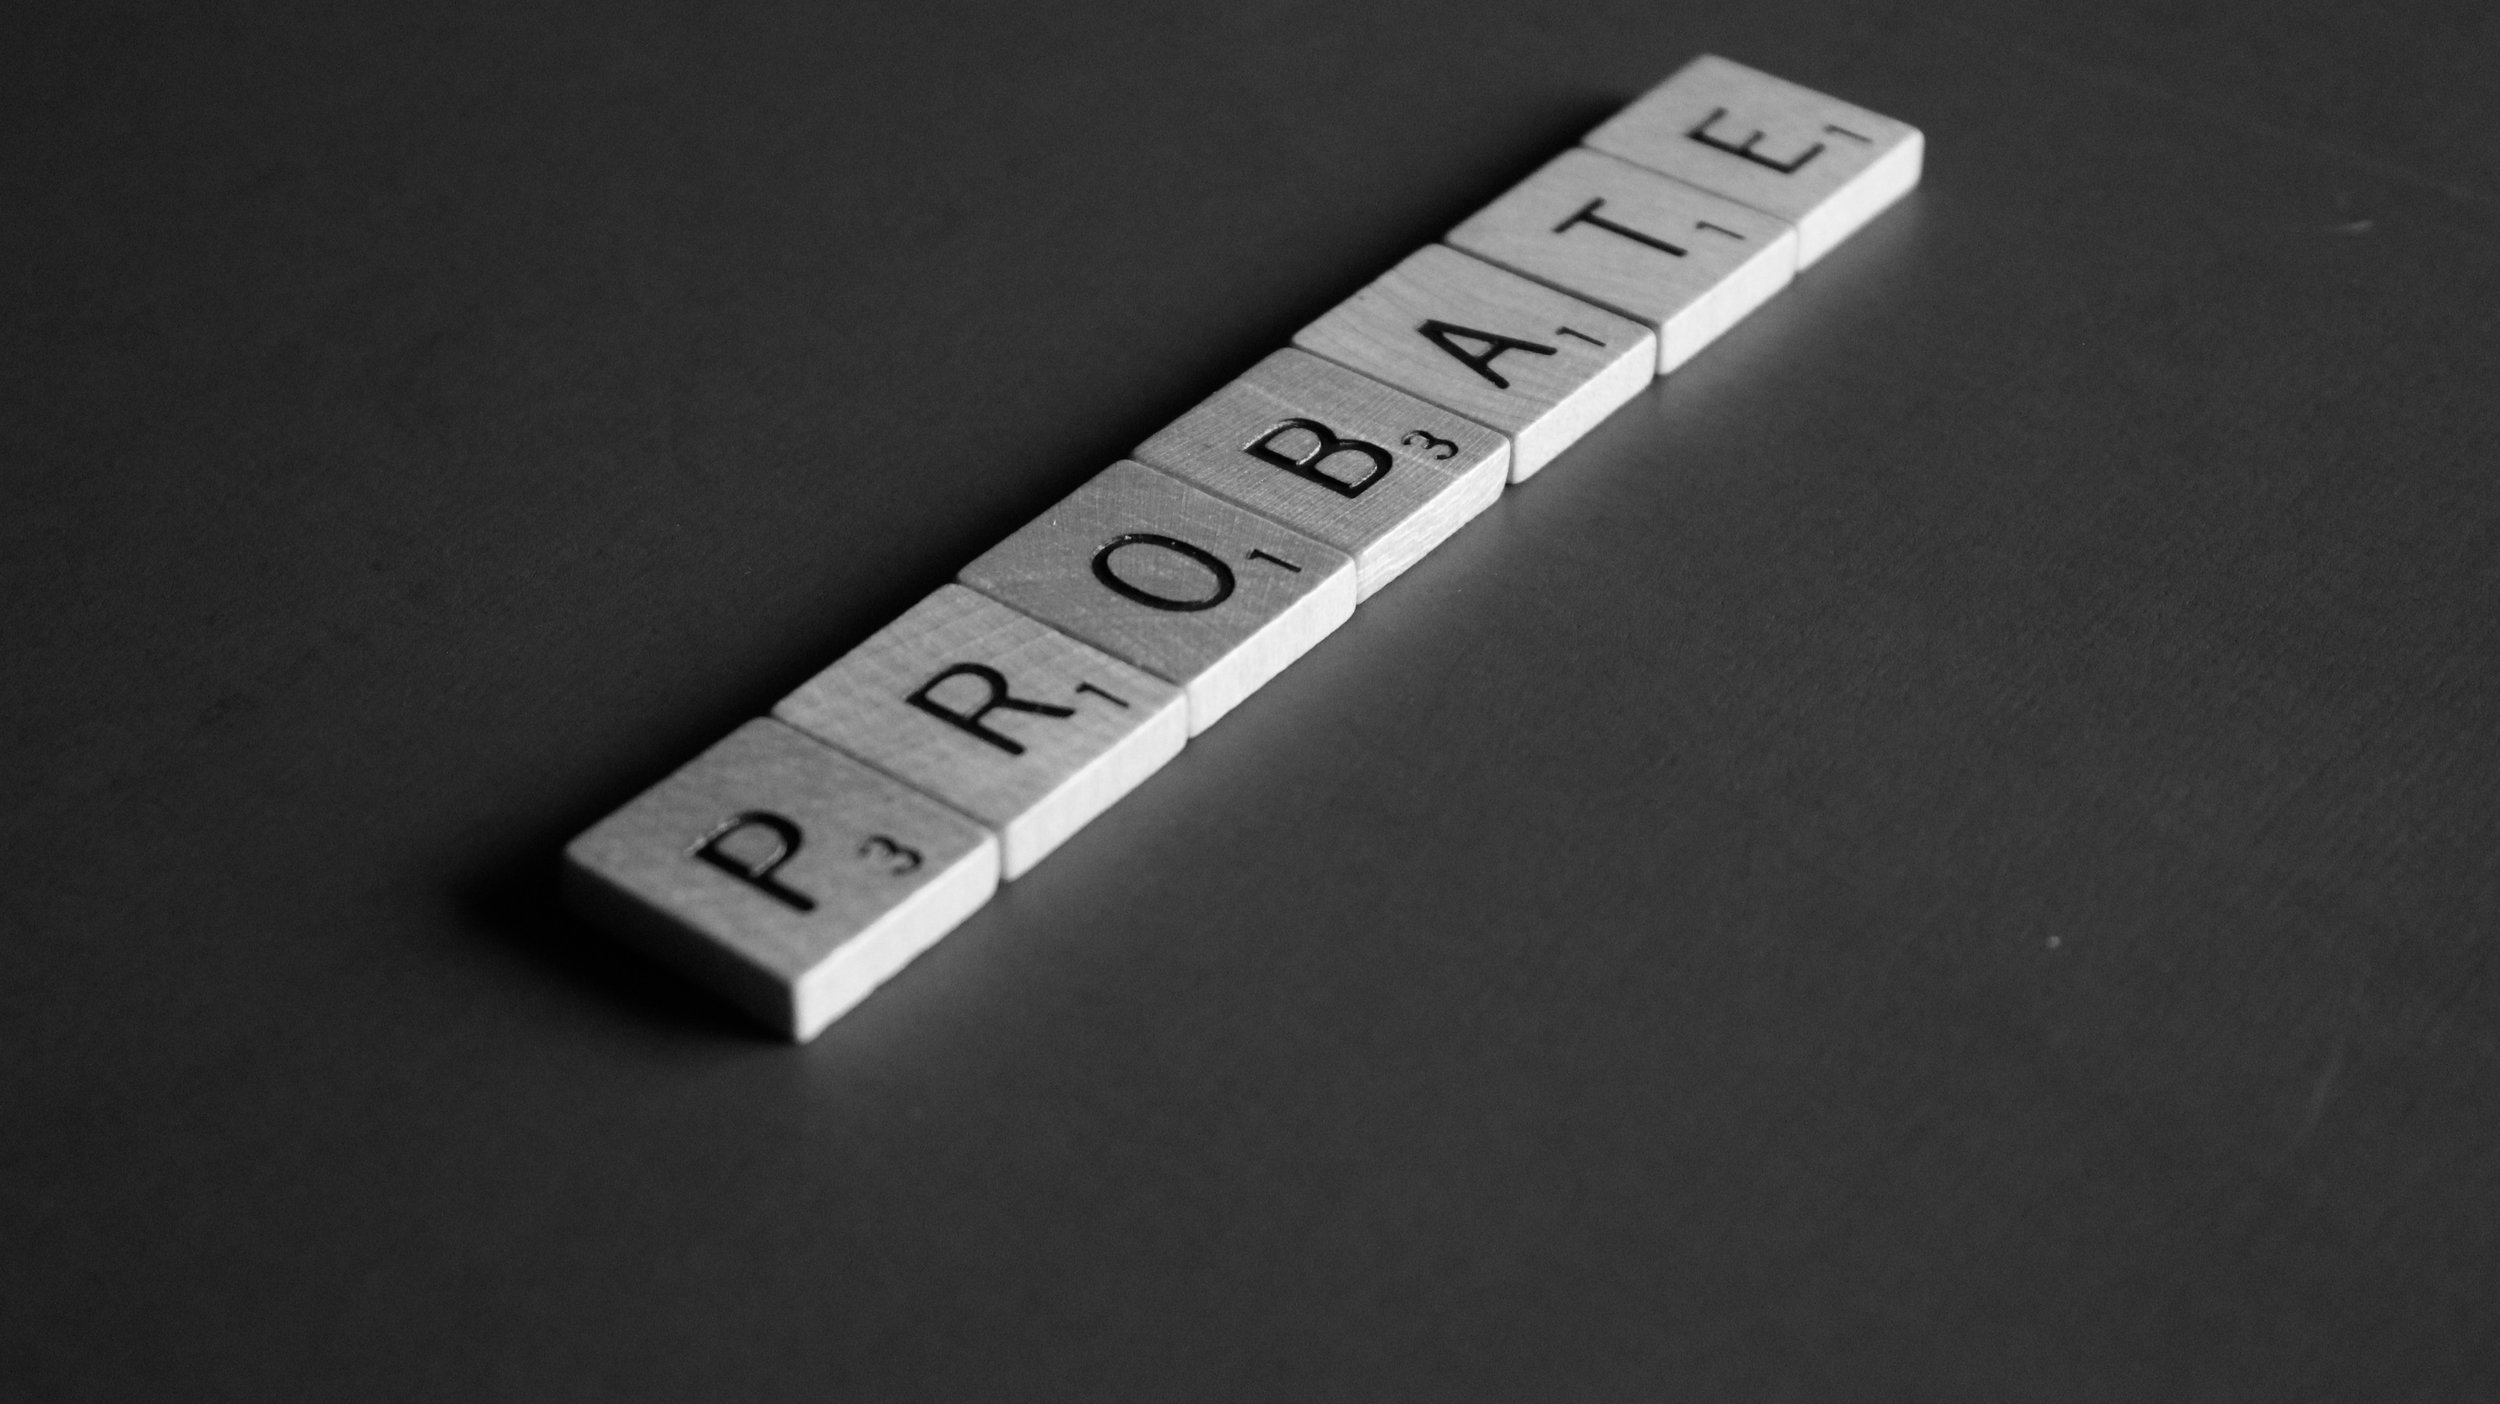 The Probate & Administration process requires detailed paperwork to be submitted to the Surrogate's Court.